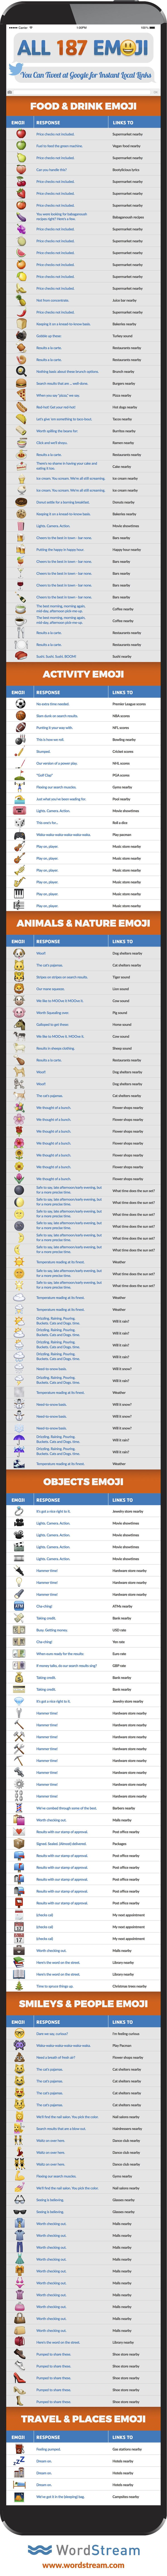 187 Emoji Symbols You Can Tweet at Google for Instant Search Results [Infographic] - @redwebdesign